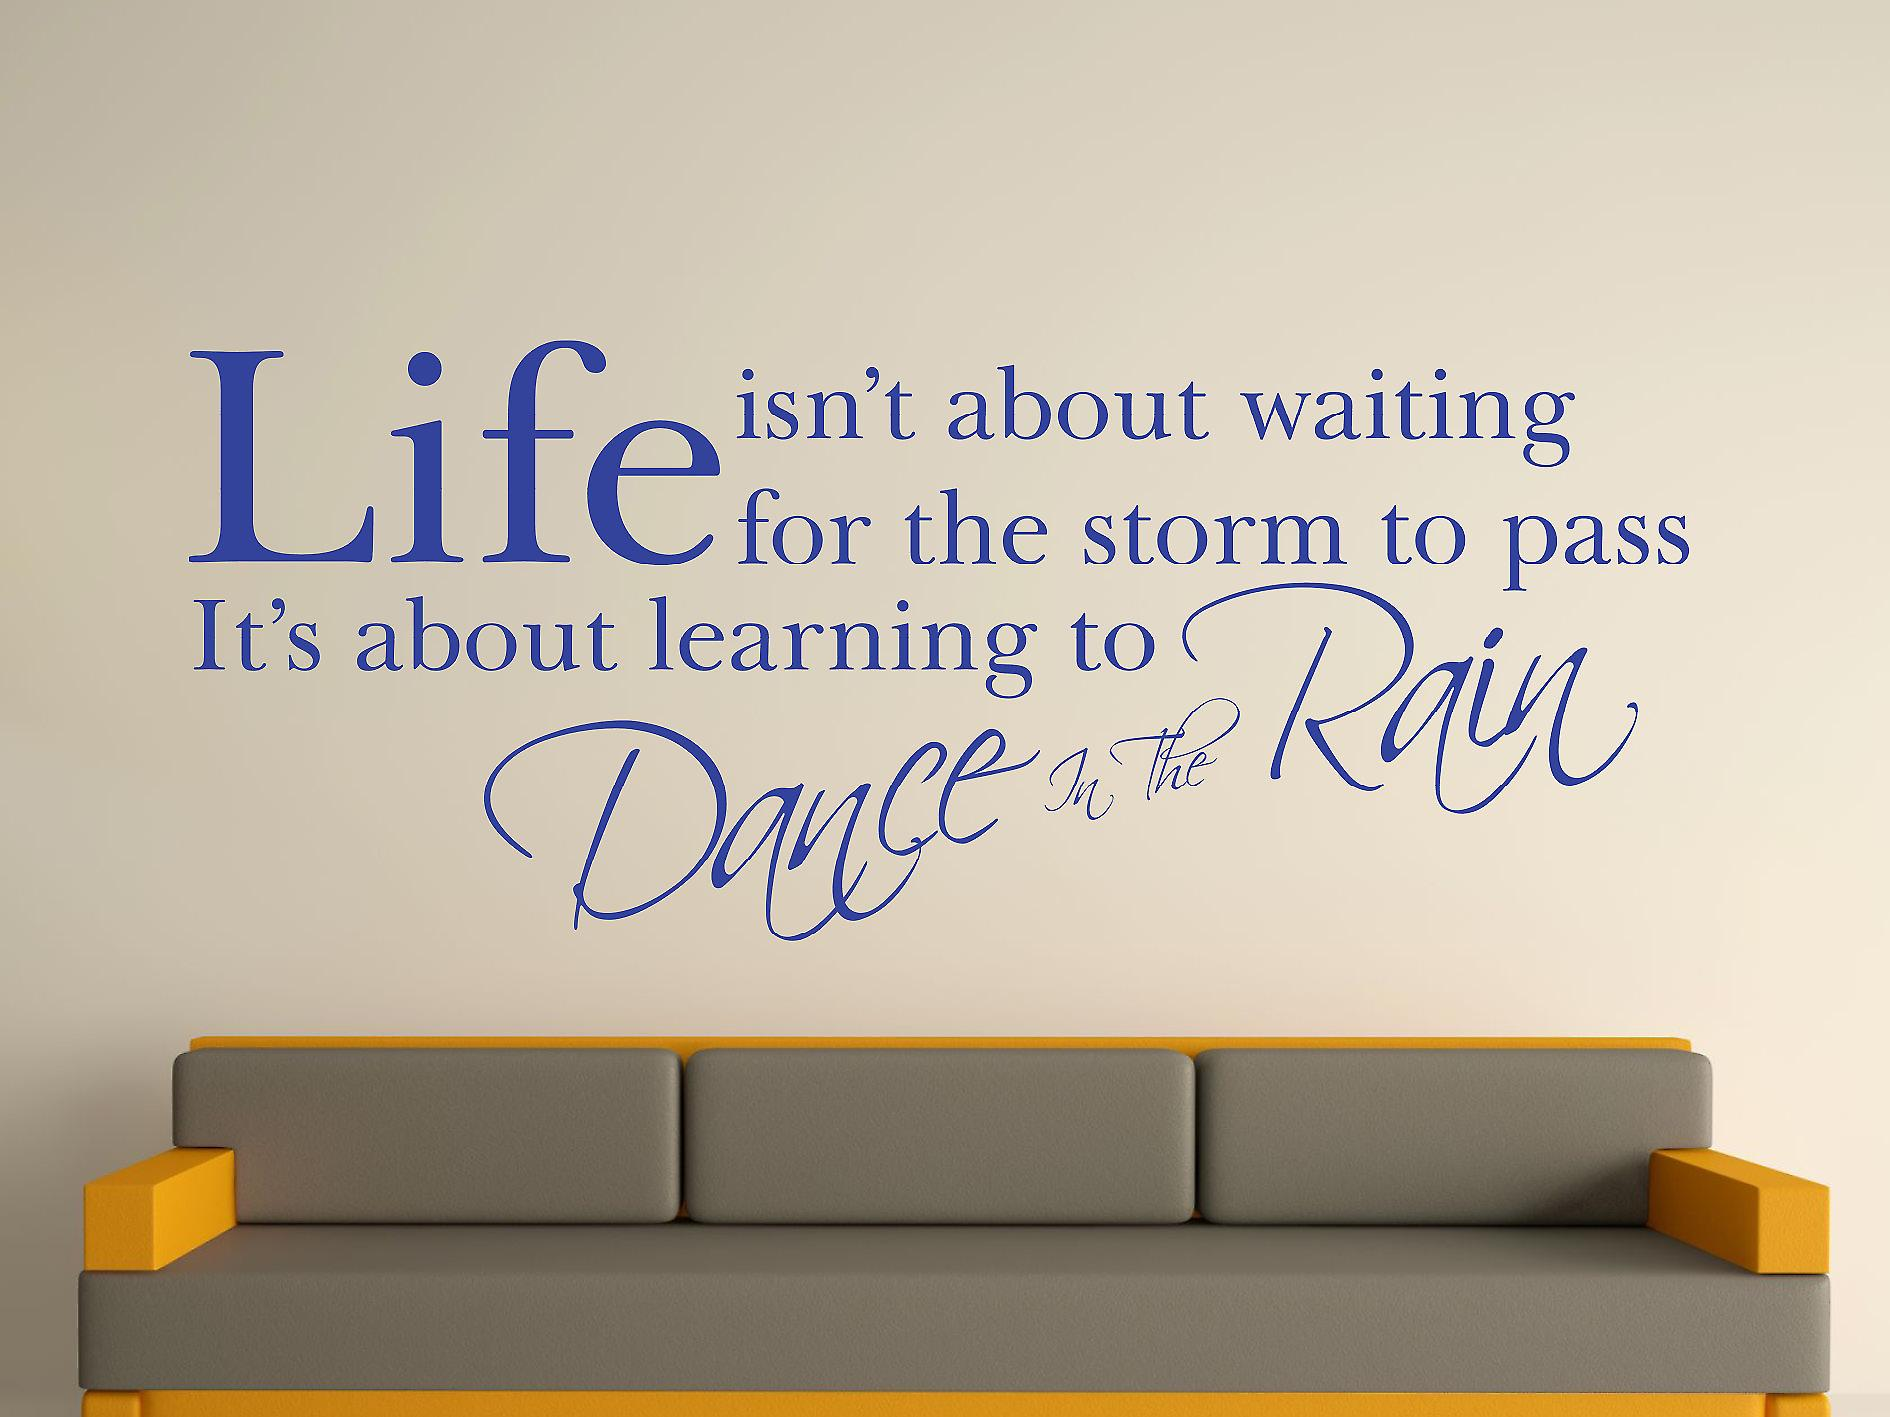 Dance In The Rain Wall Art Sticker - Brilliant Blue